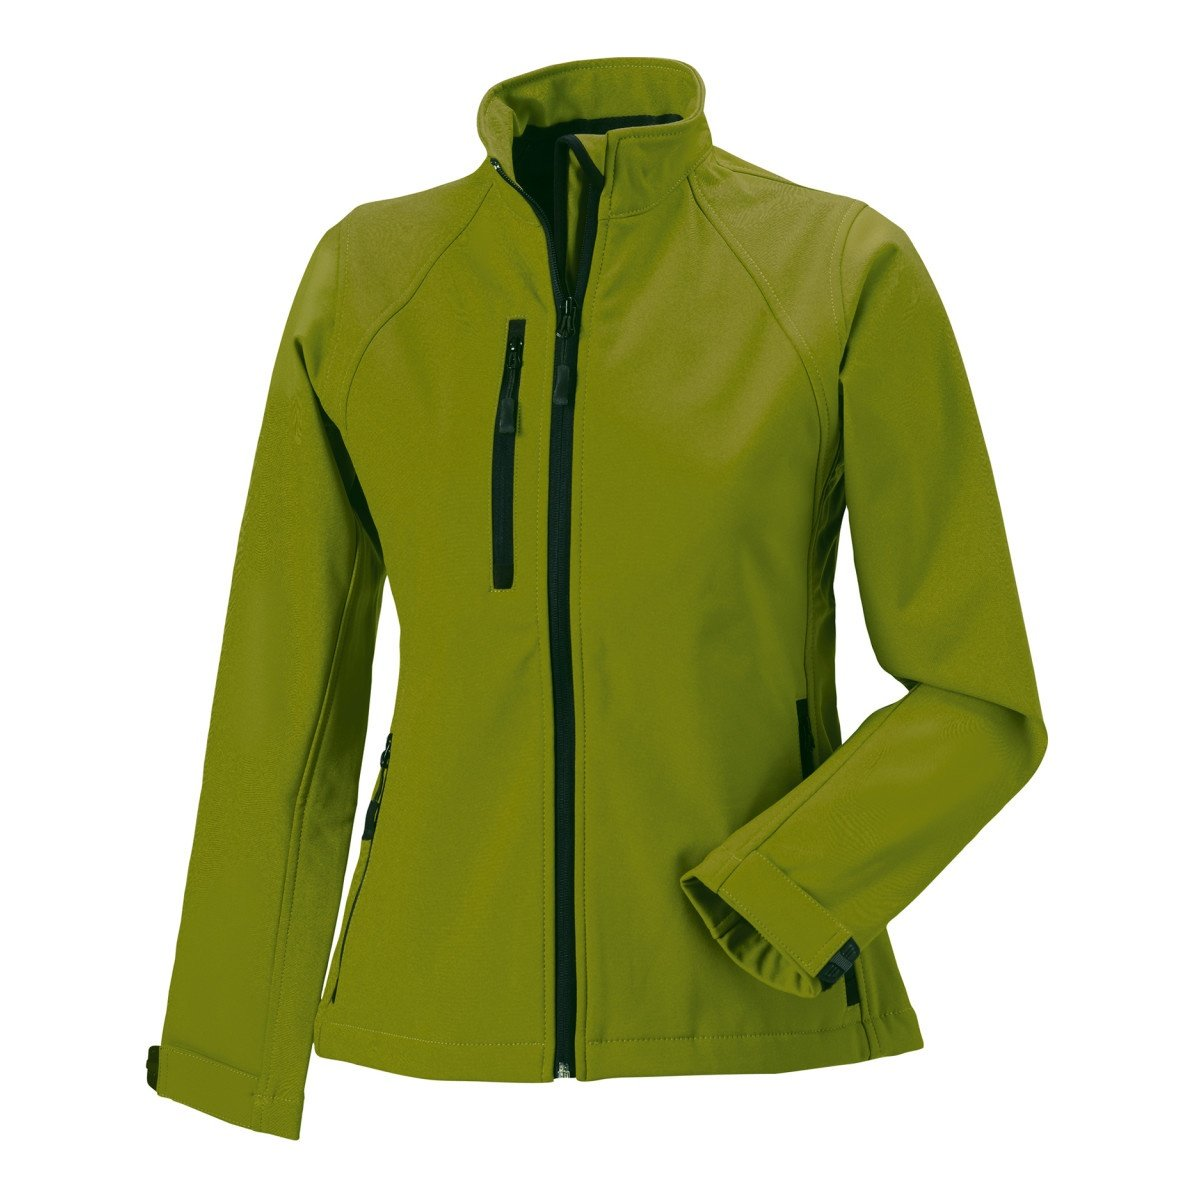 Cactus L Jerzees Colours Ladies Water Resistant & Windproof Soft Shell Jacket